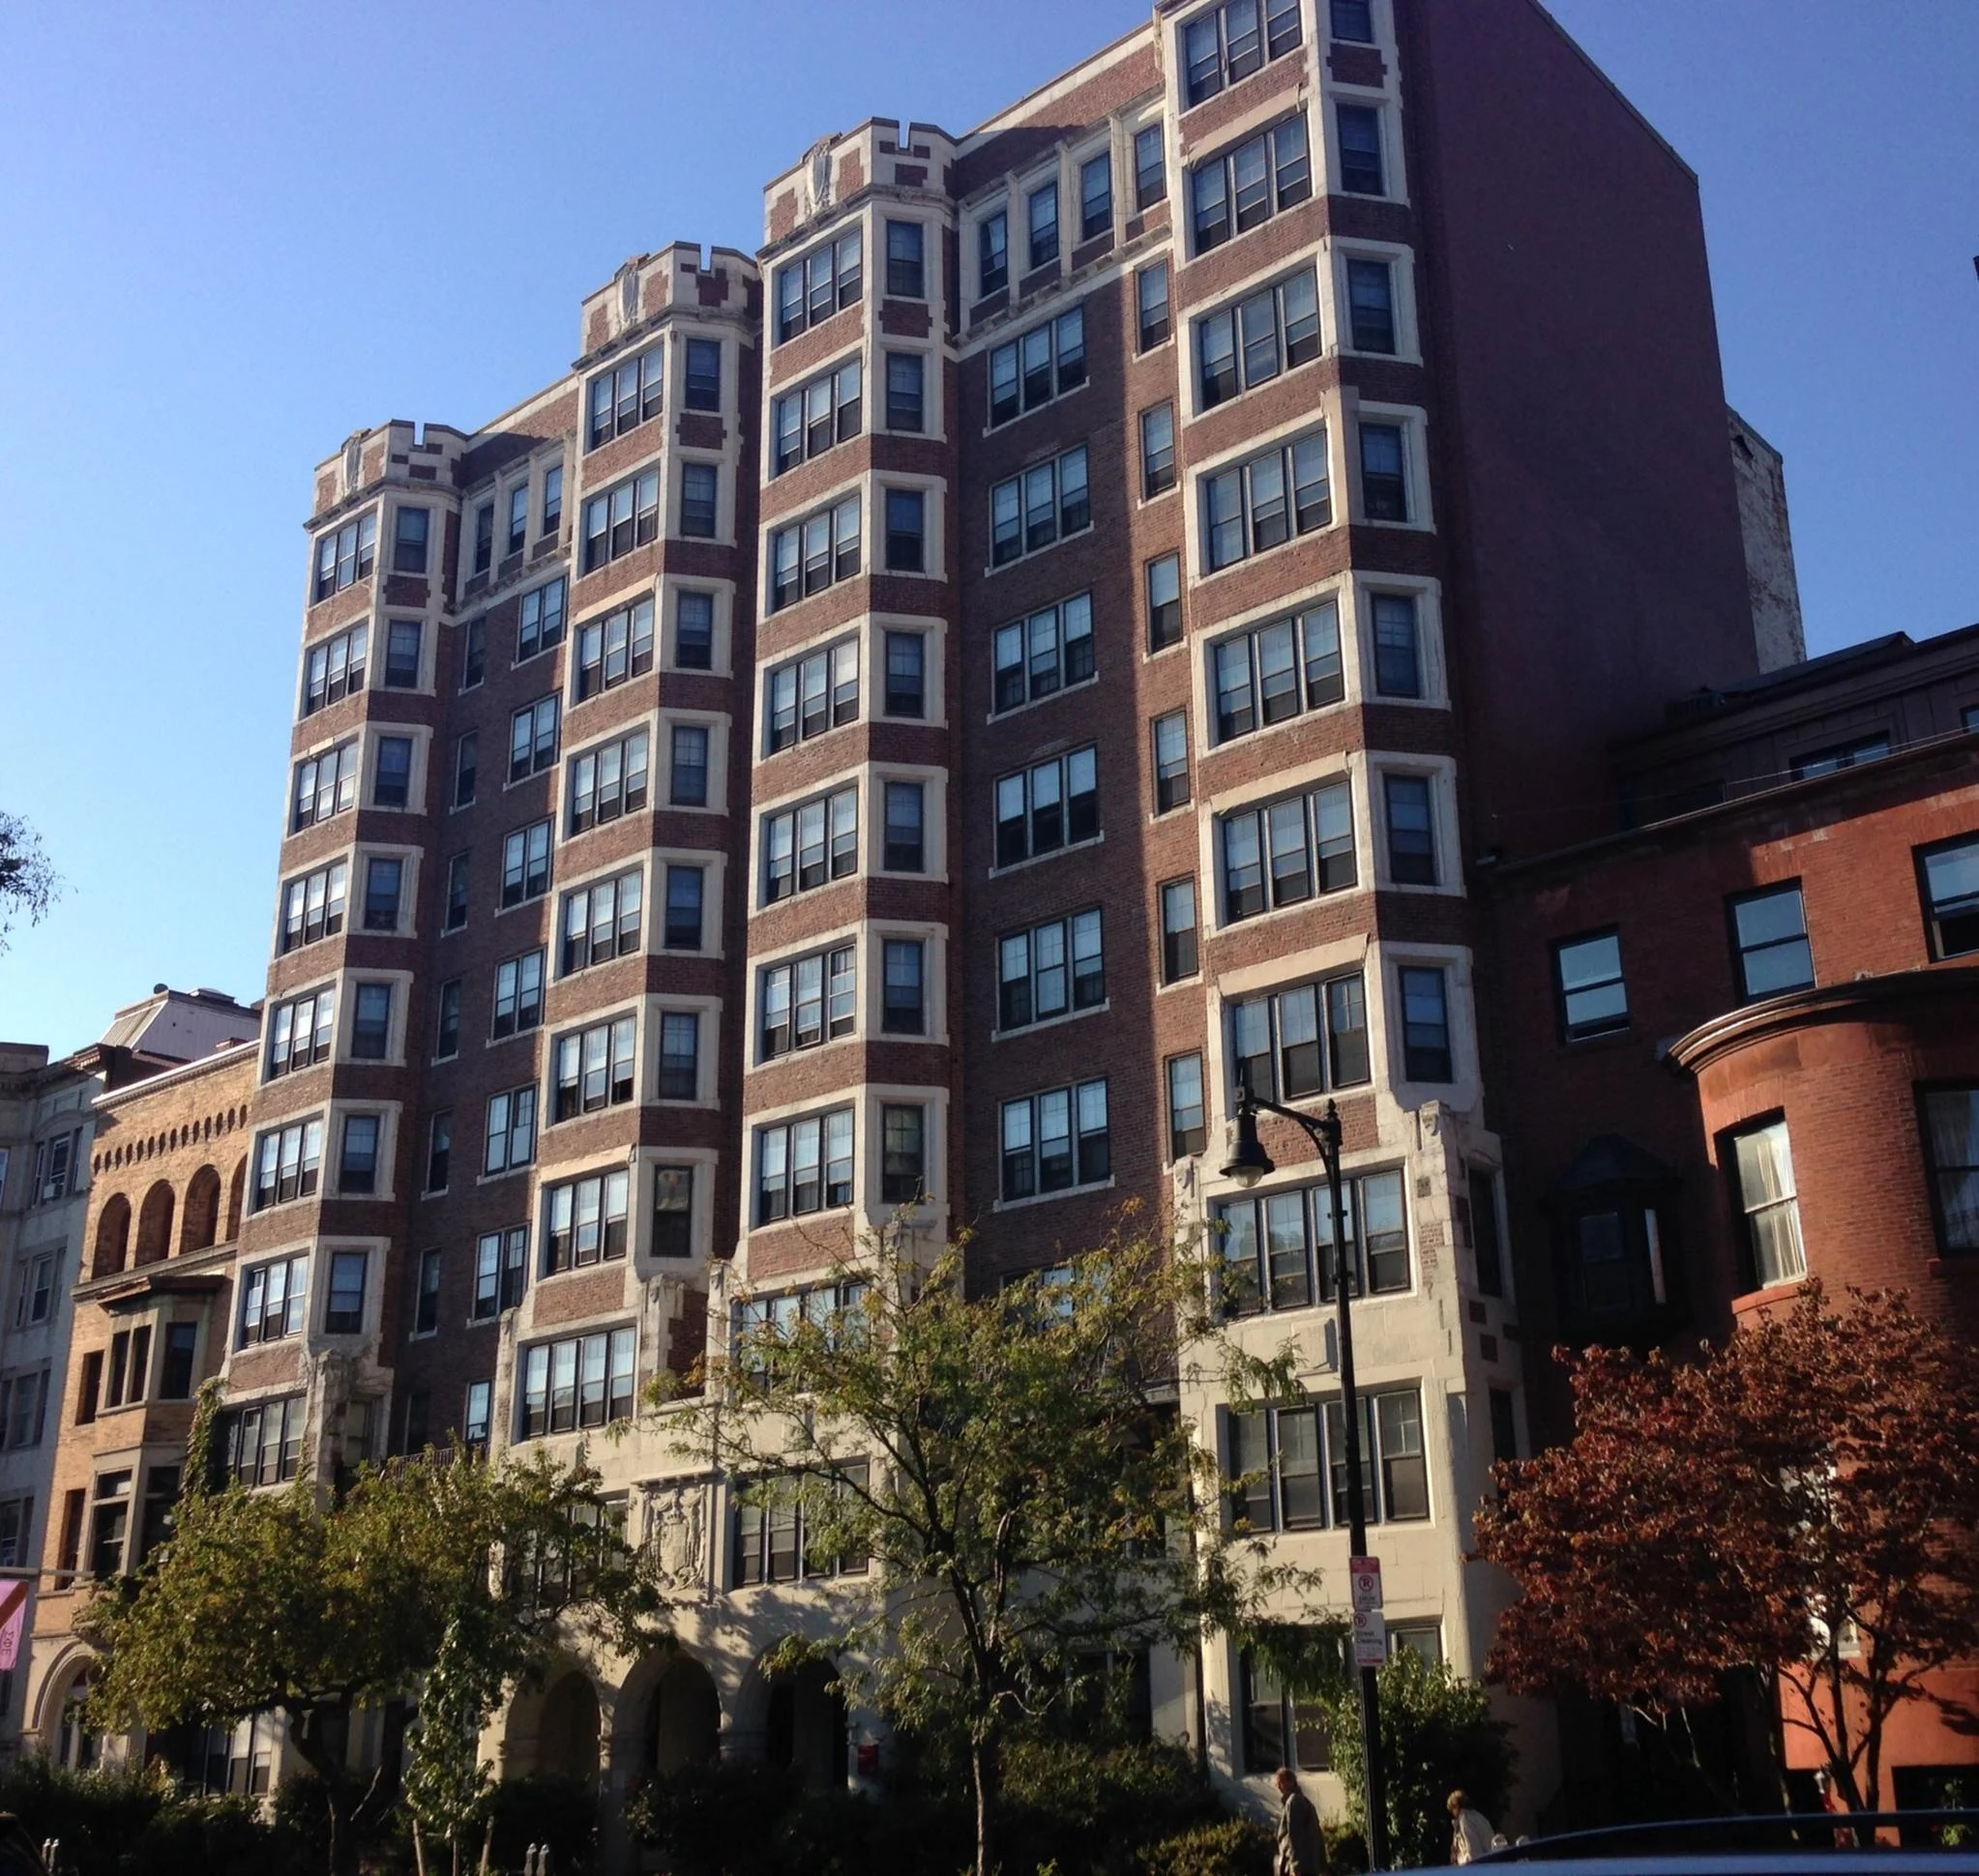 BU housing guide: Where to live. as told by BU students